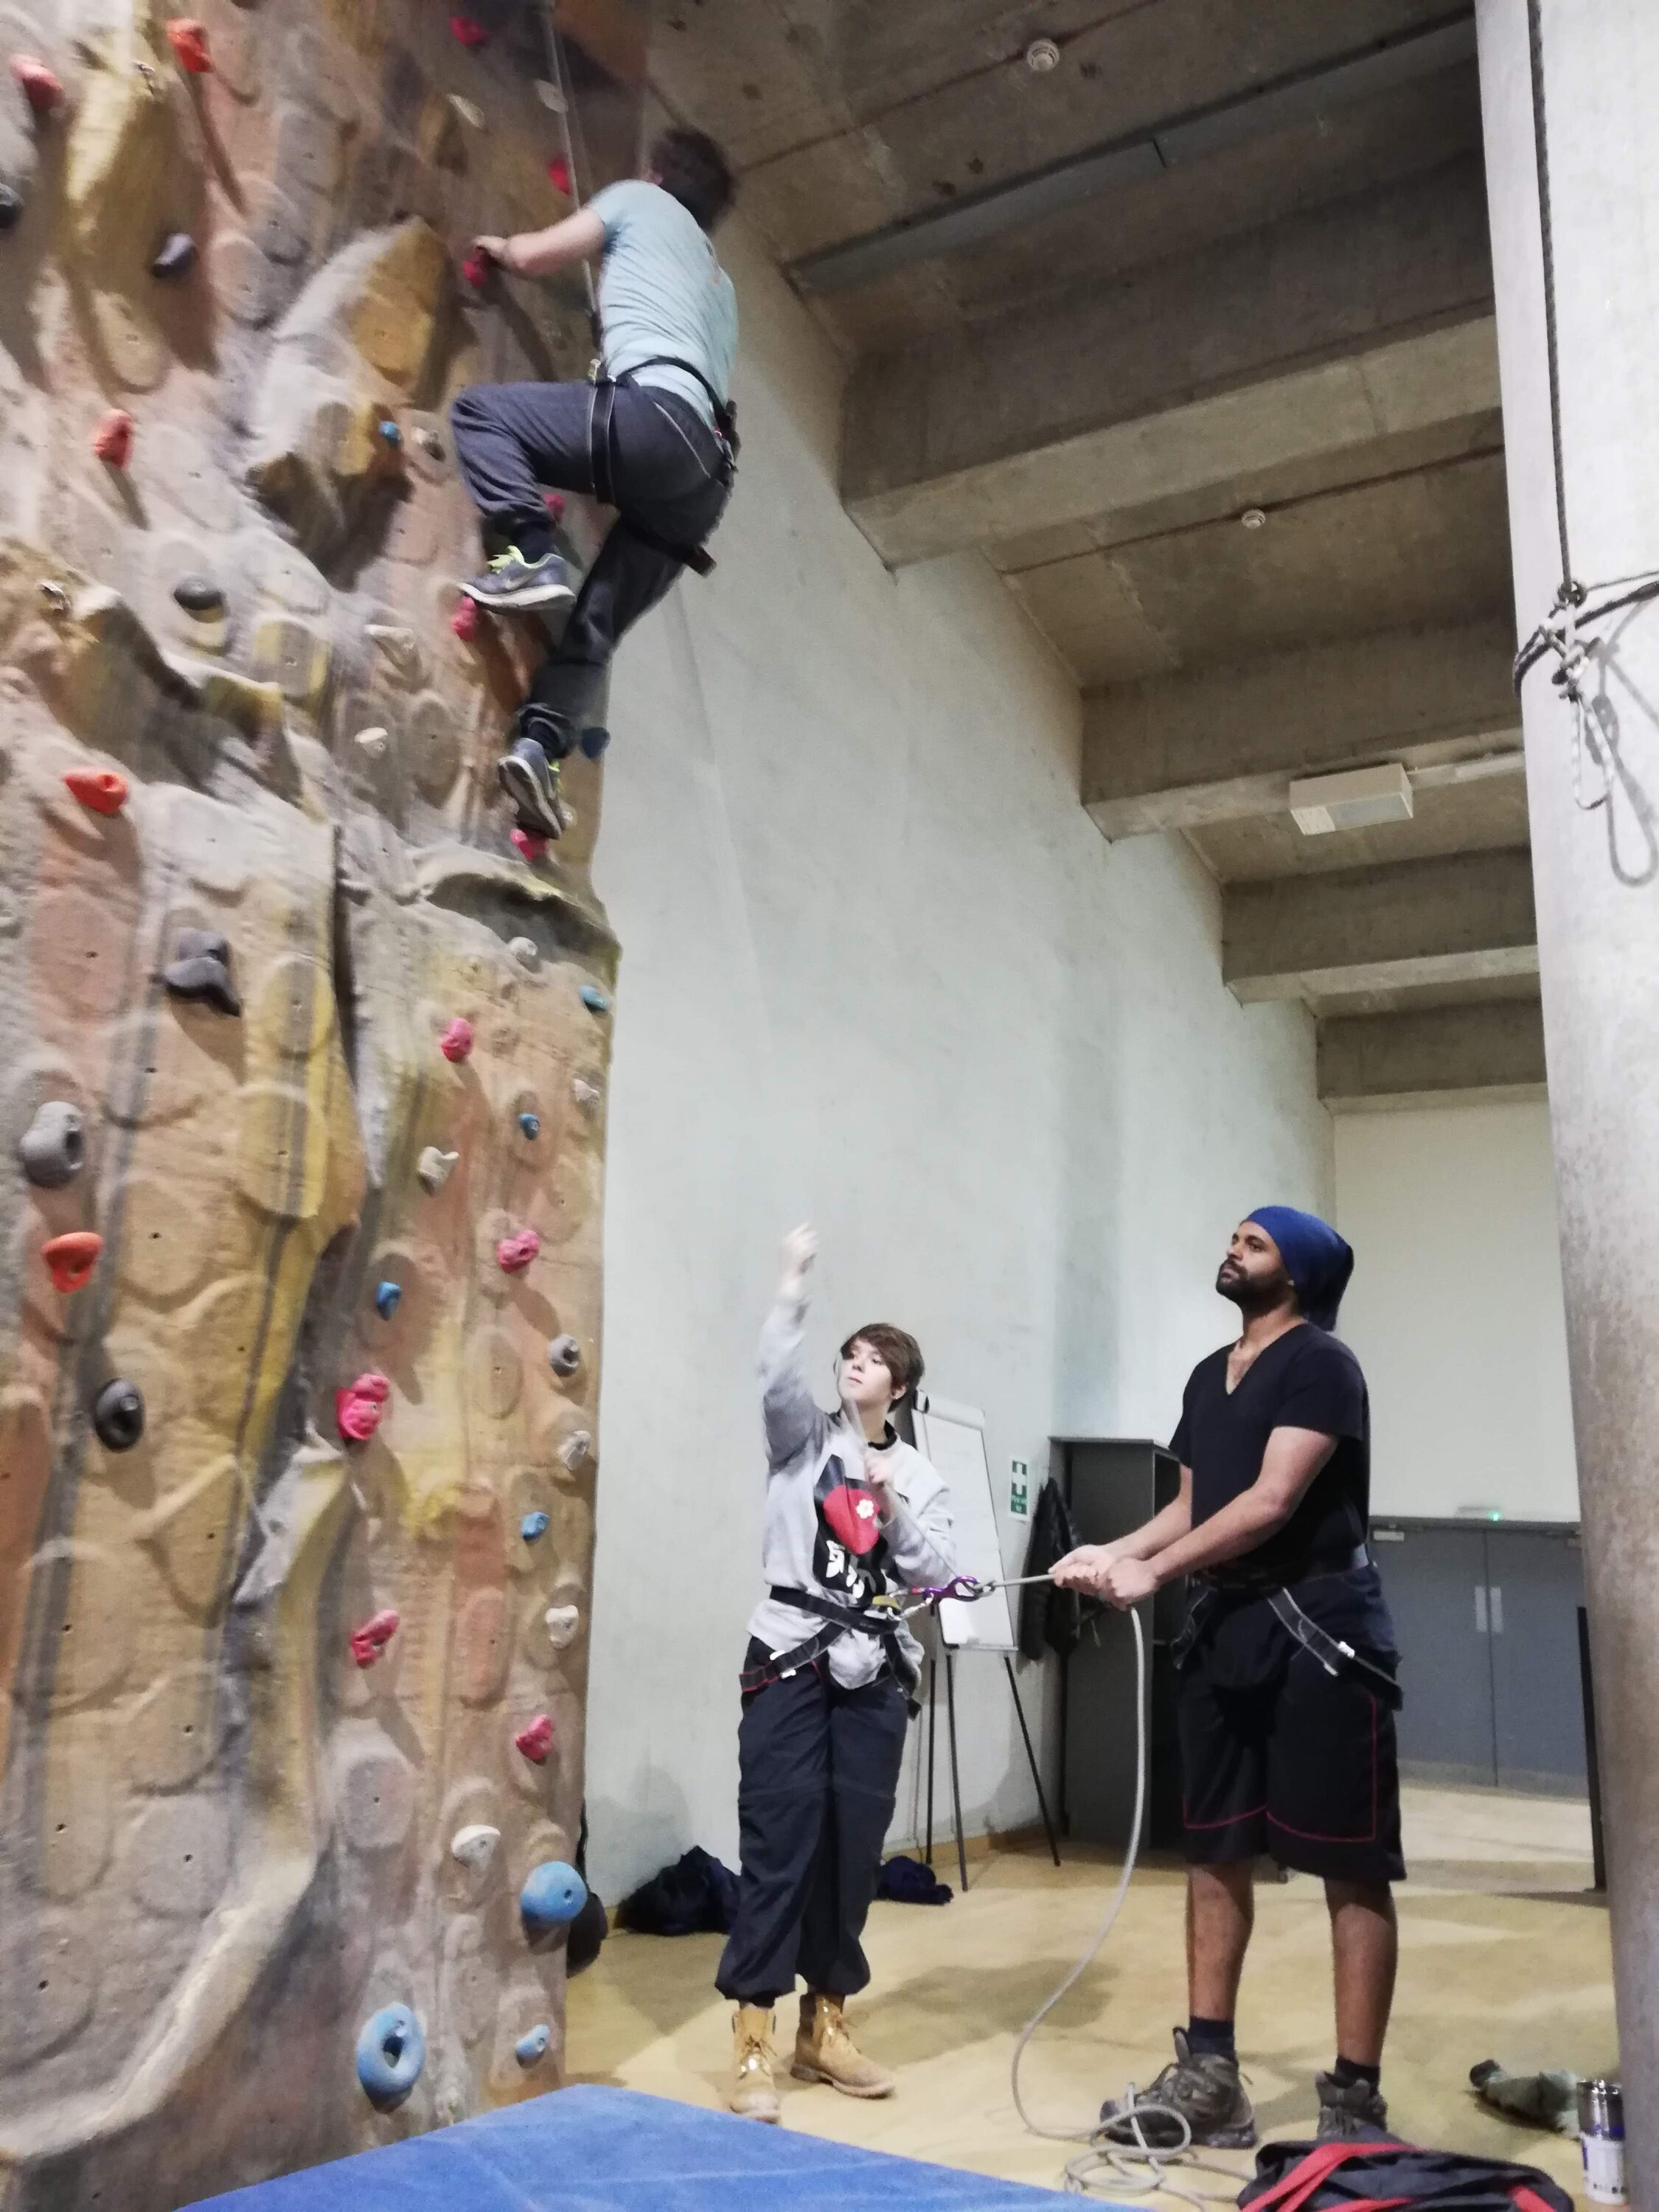 Indoor Climbing Assistant (ICA)